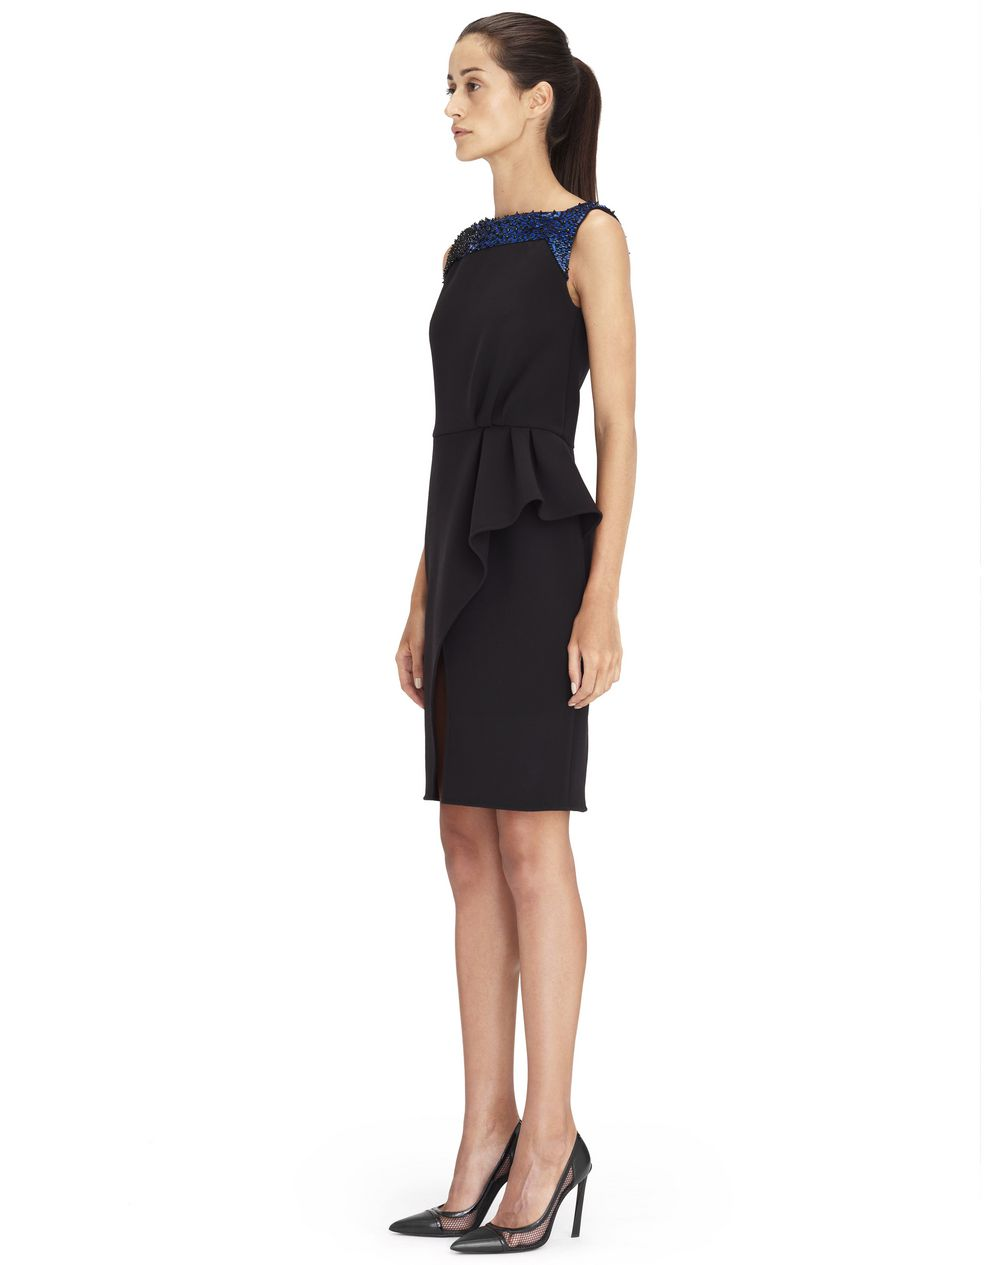 BLACK EMBROIDERED DRESS - Lanvin